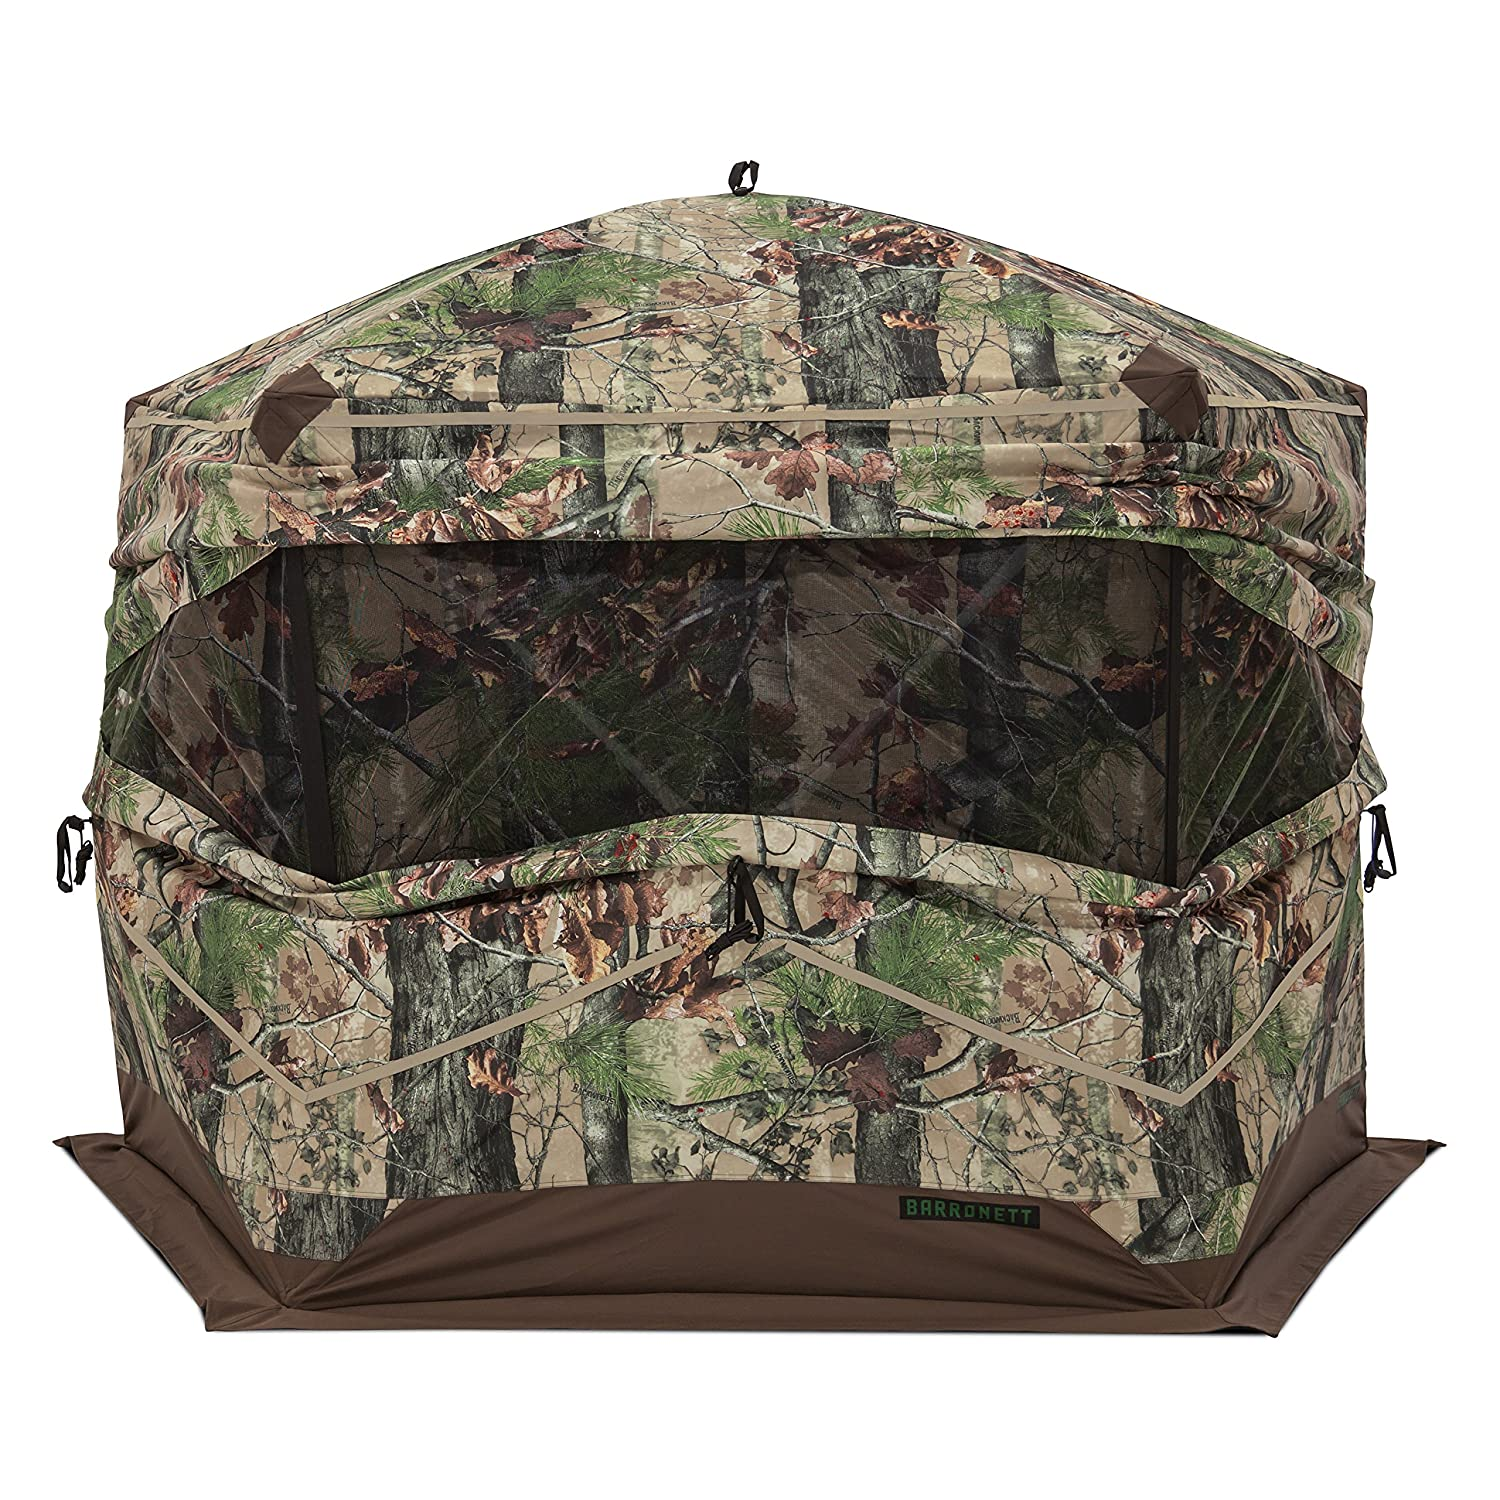 outdoors blind stand person hunting amazon made fitting muddy and nexus to kit sports blinds dp fit camo partner com